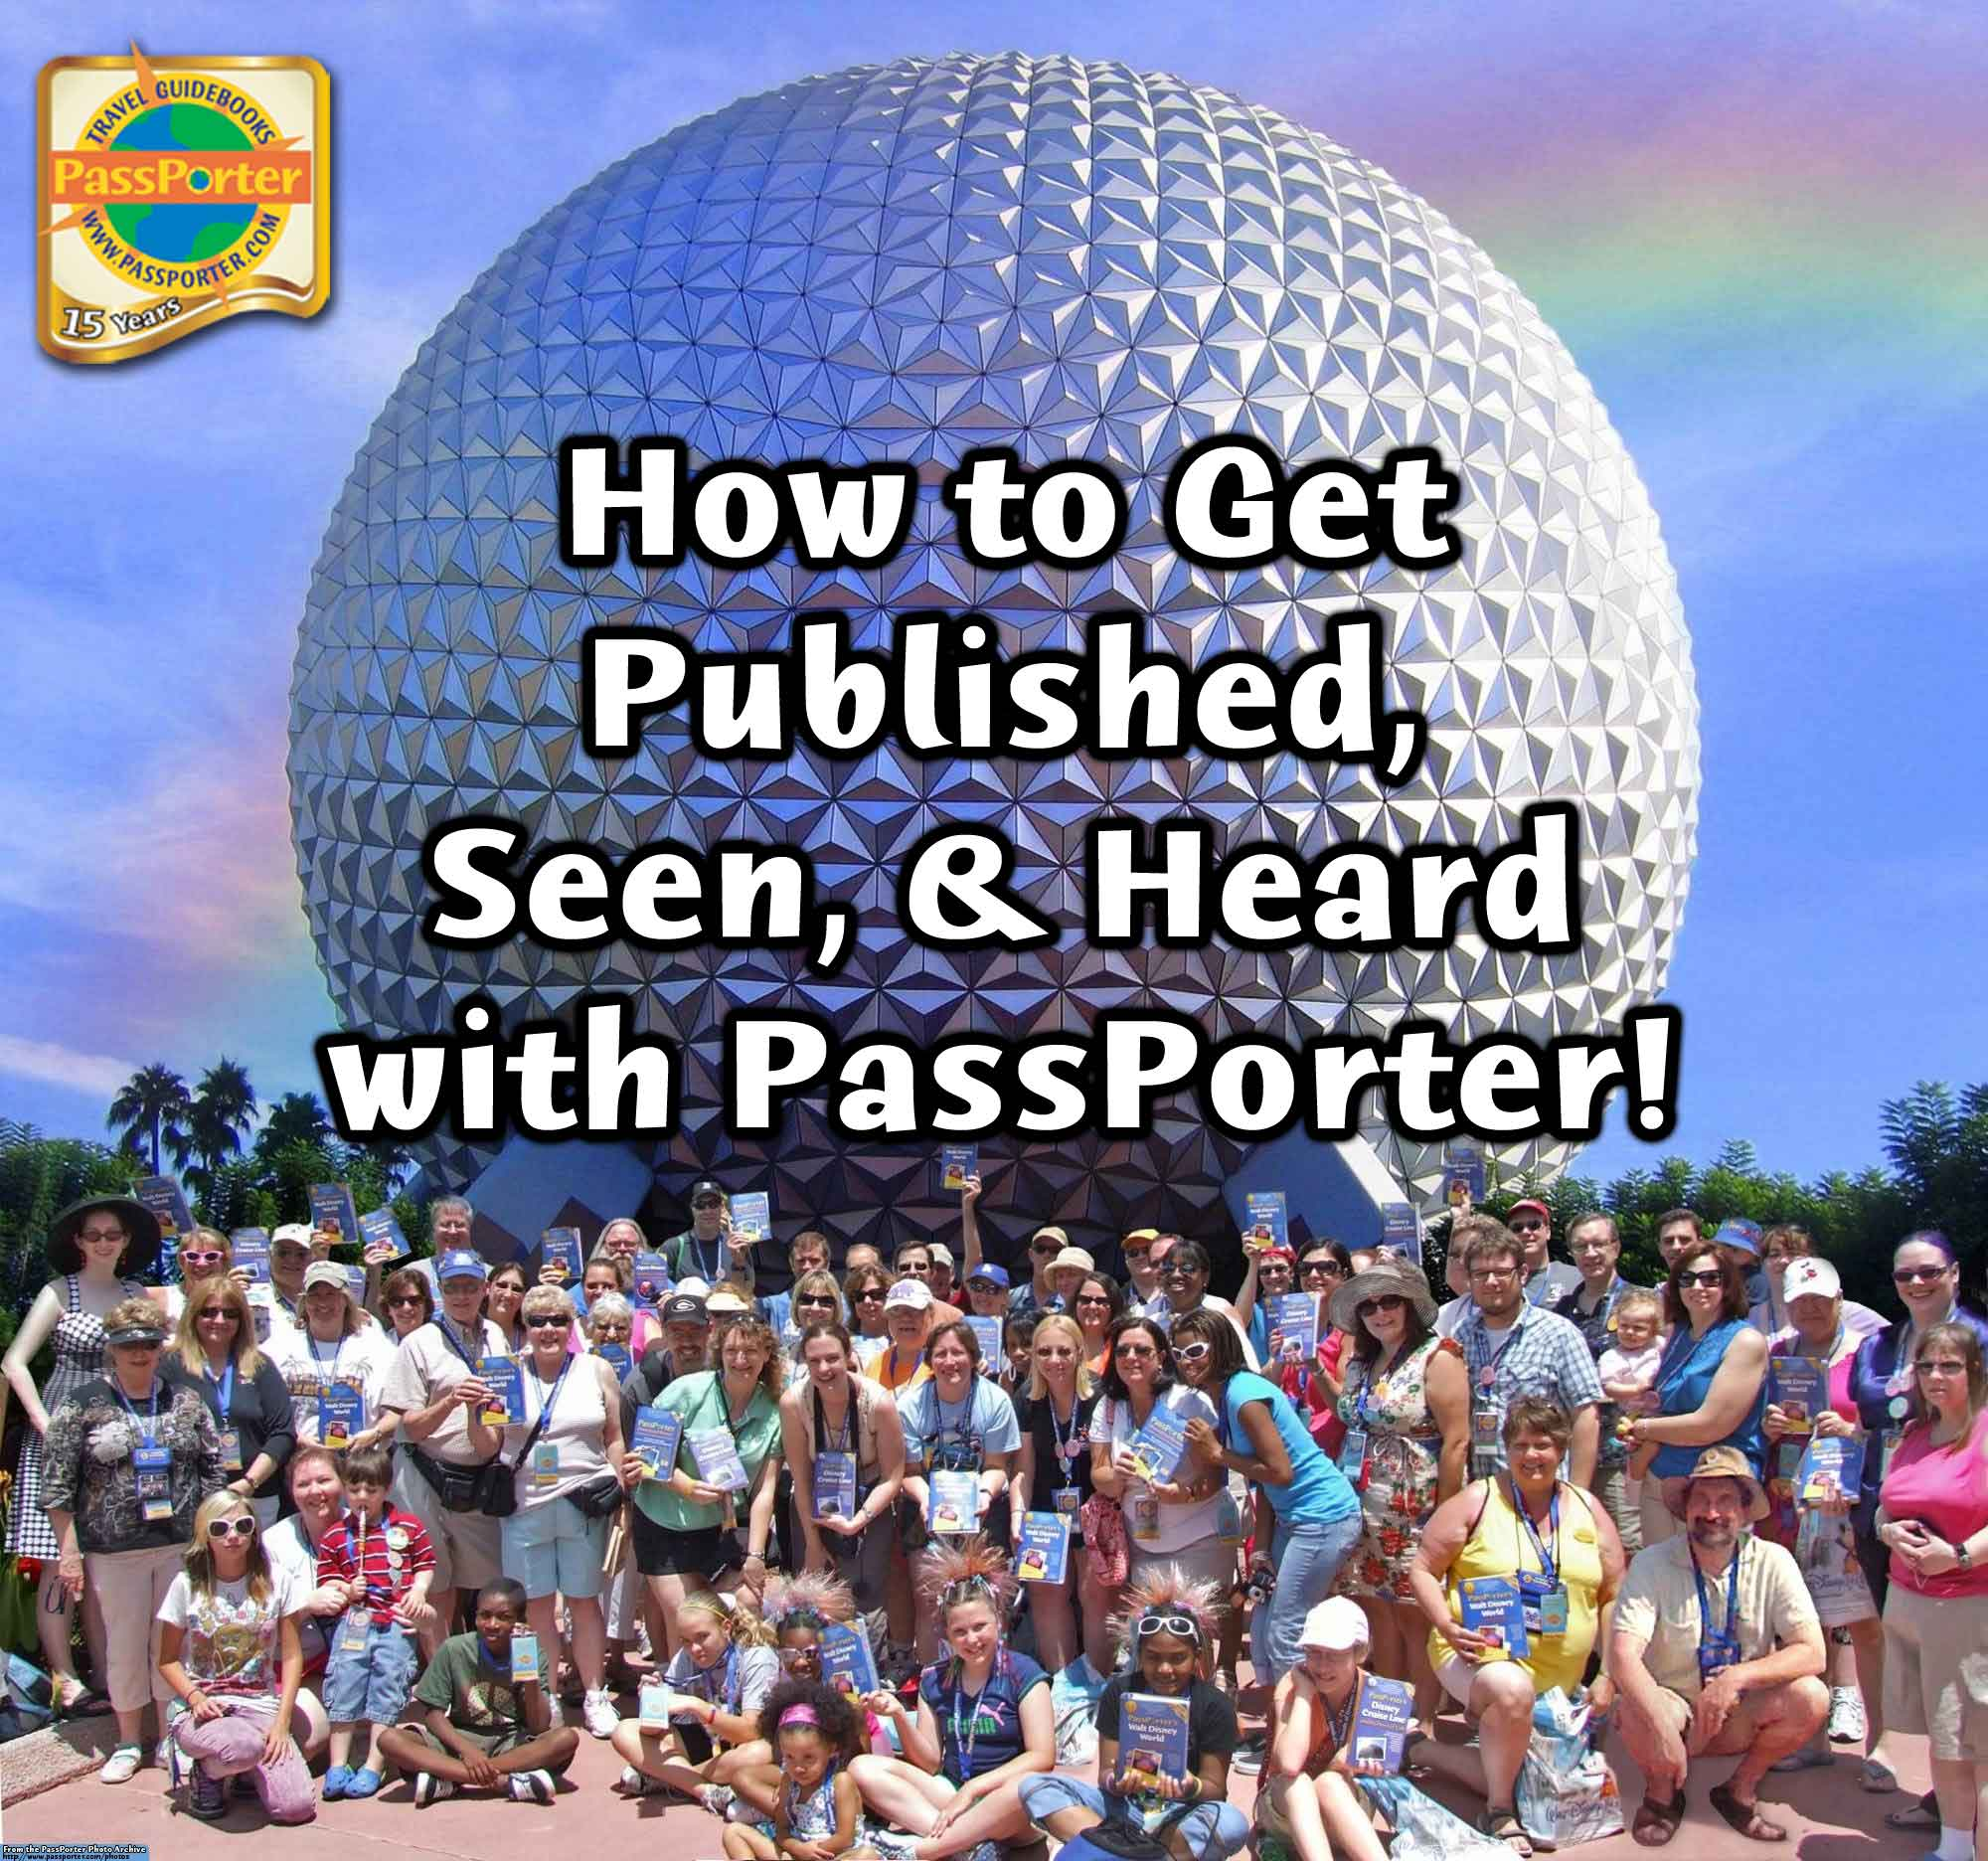 passporter-reviews